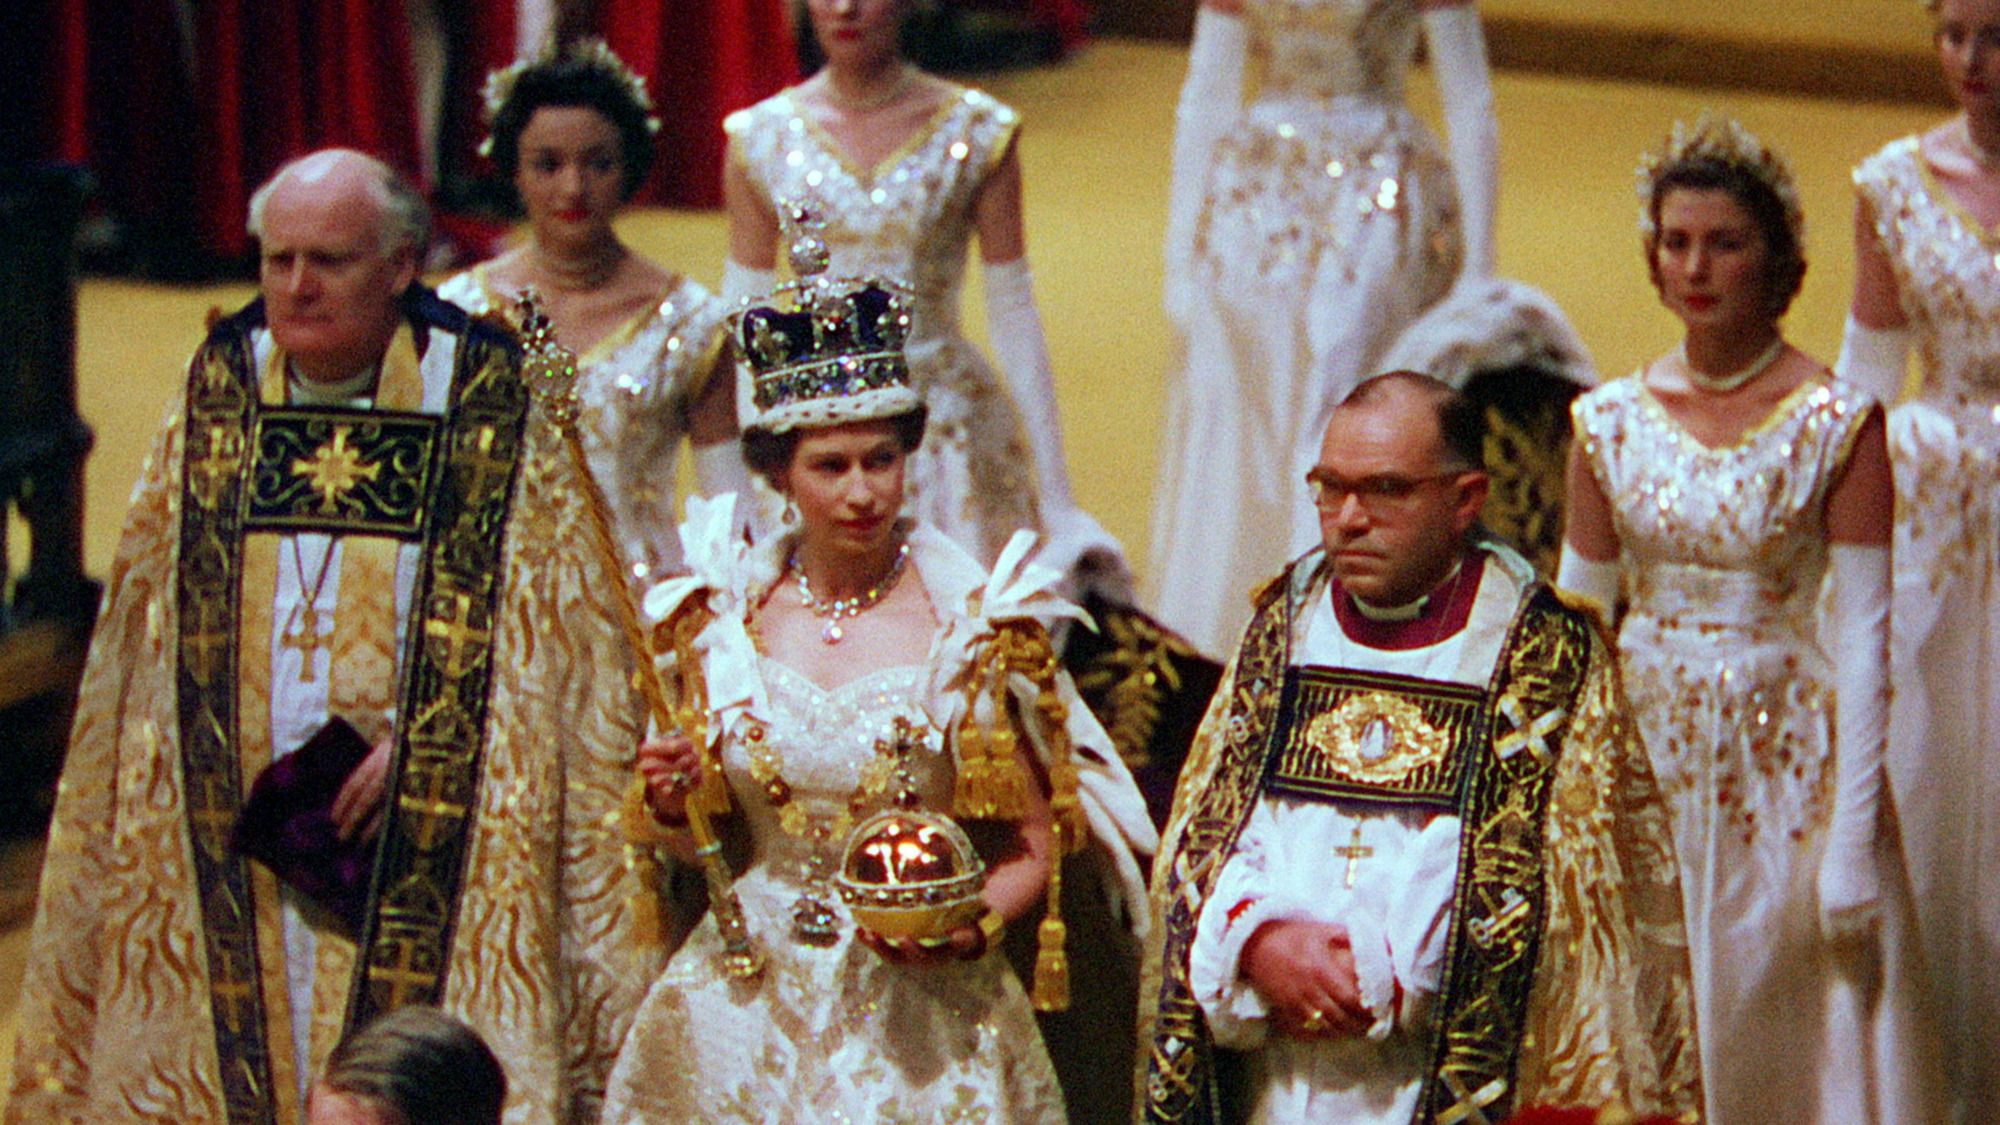 The Queen's coronation - 8 fascinating things we learned from The Coronation documentary